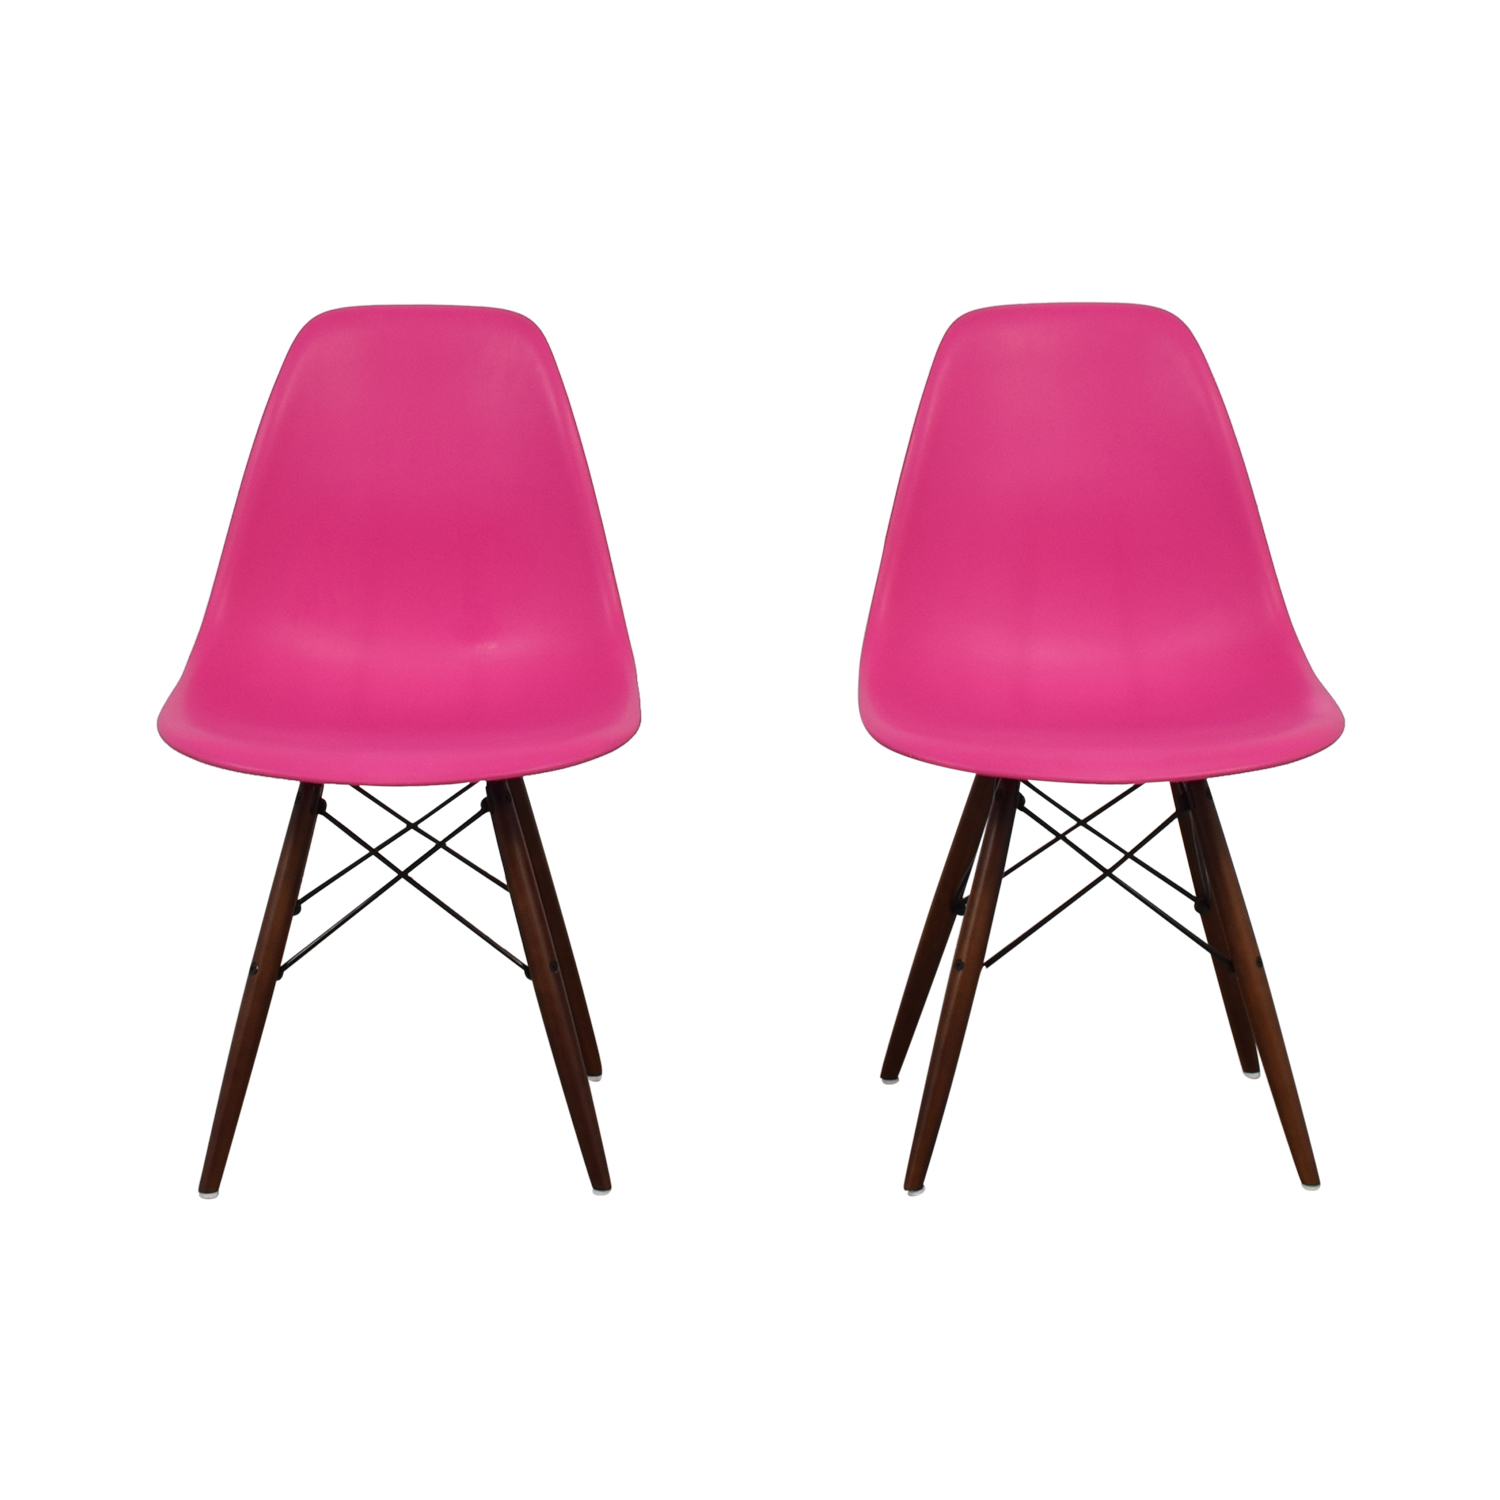 Mid-Century Pink Chairs for sale